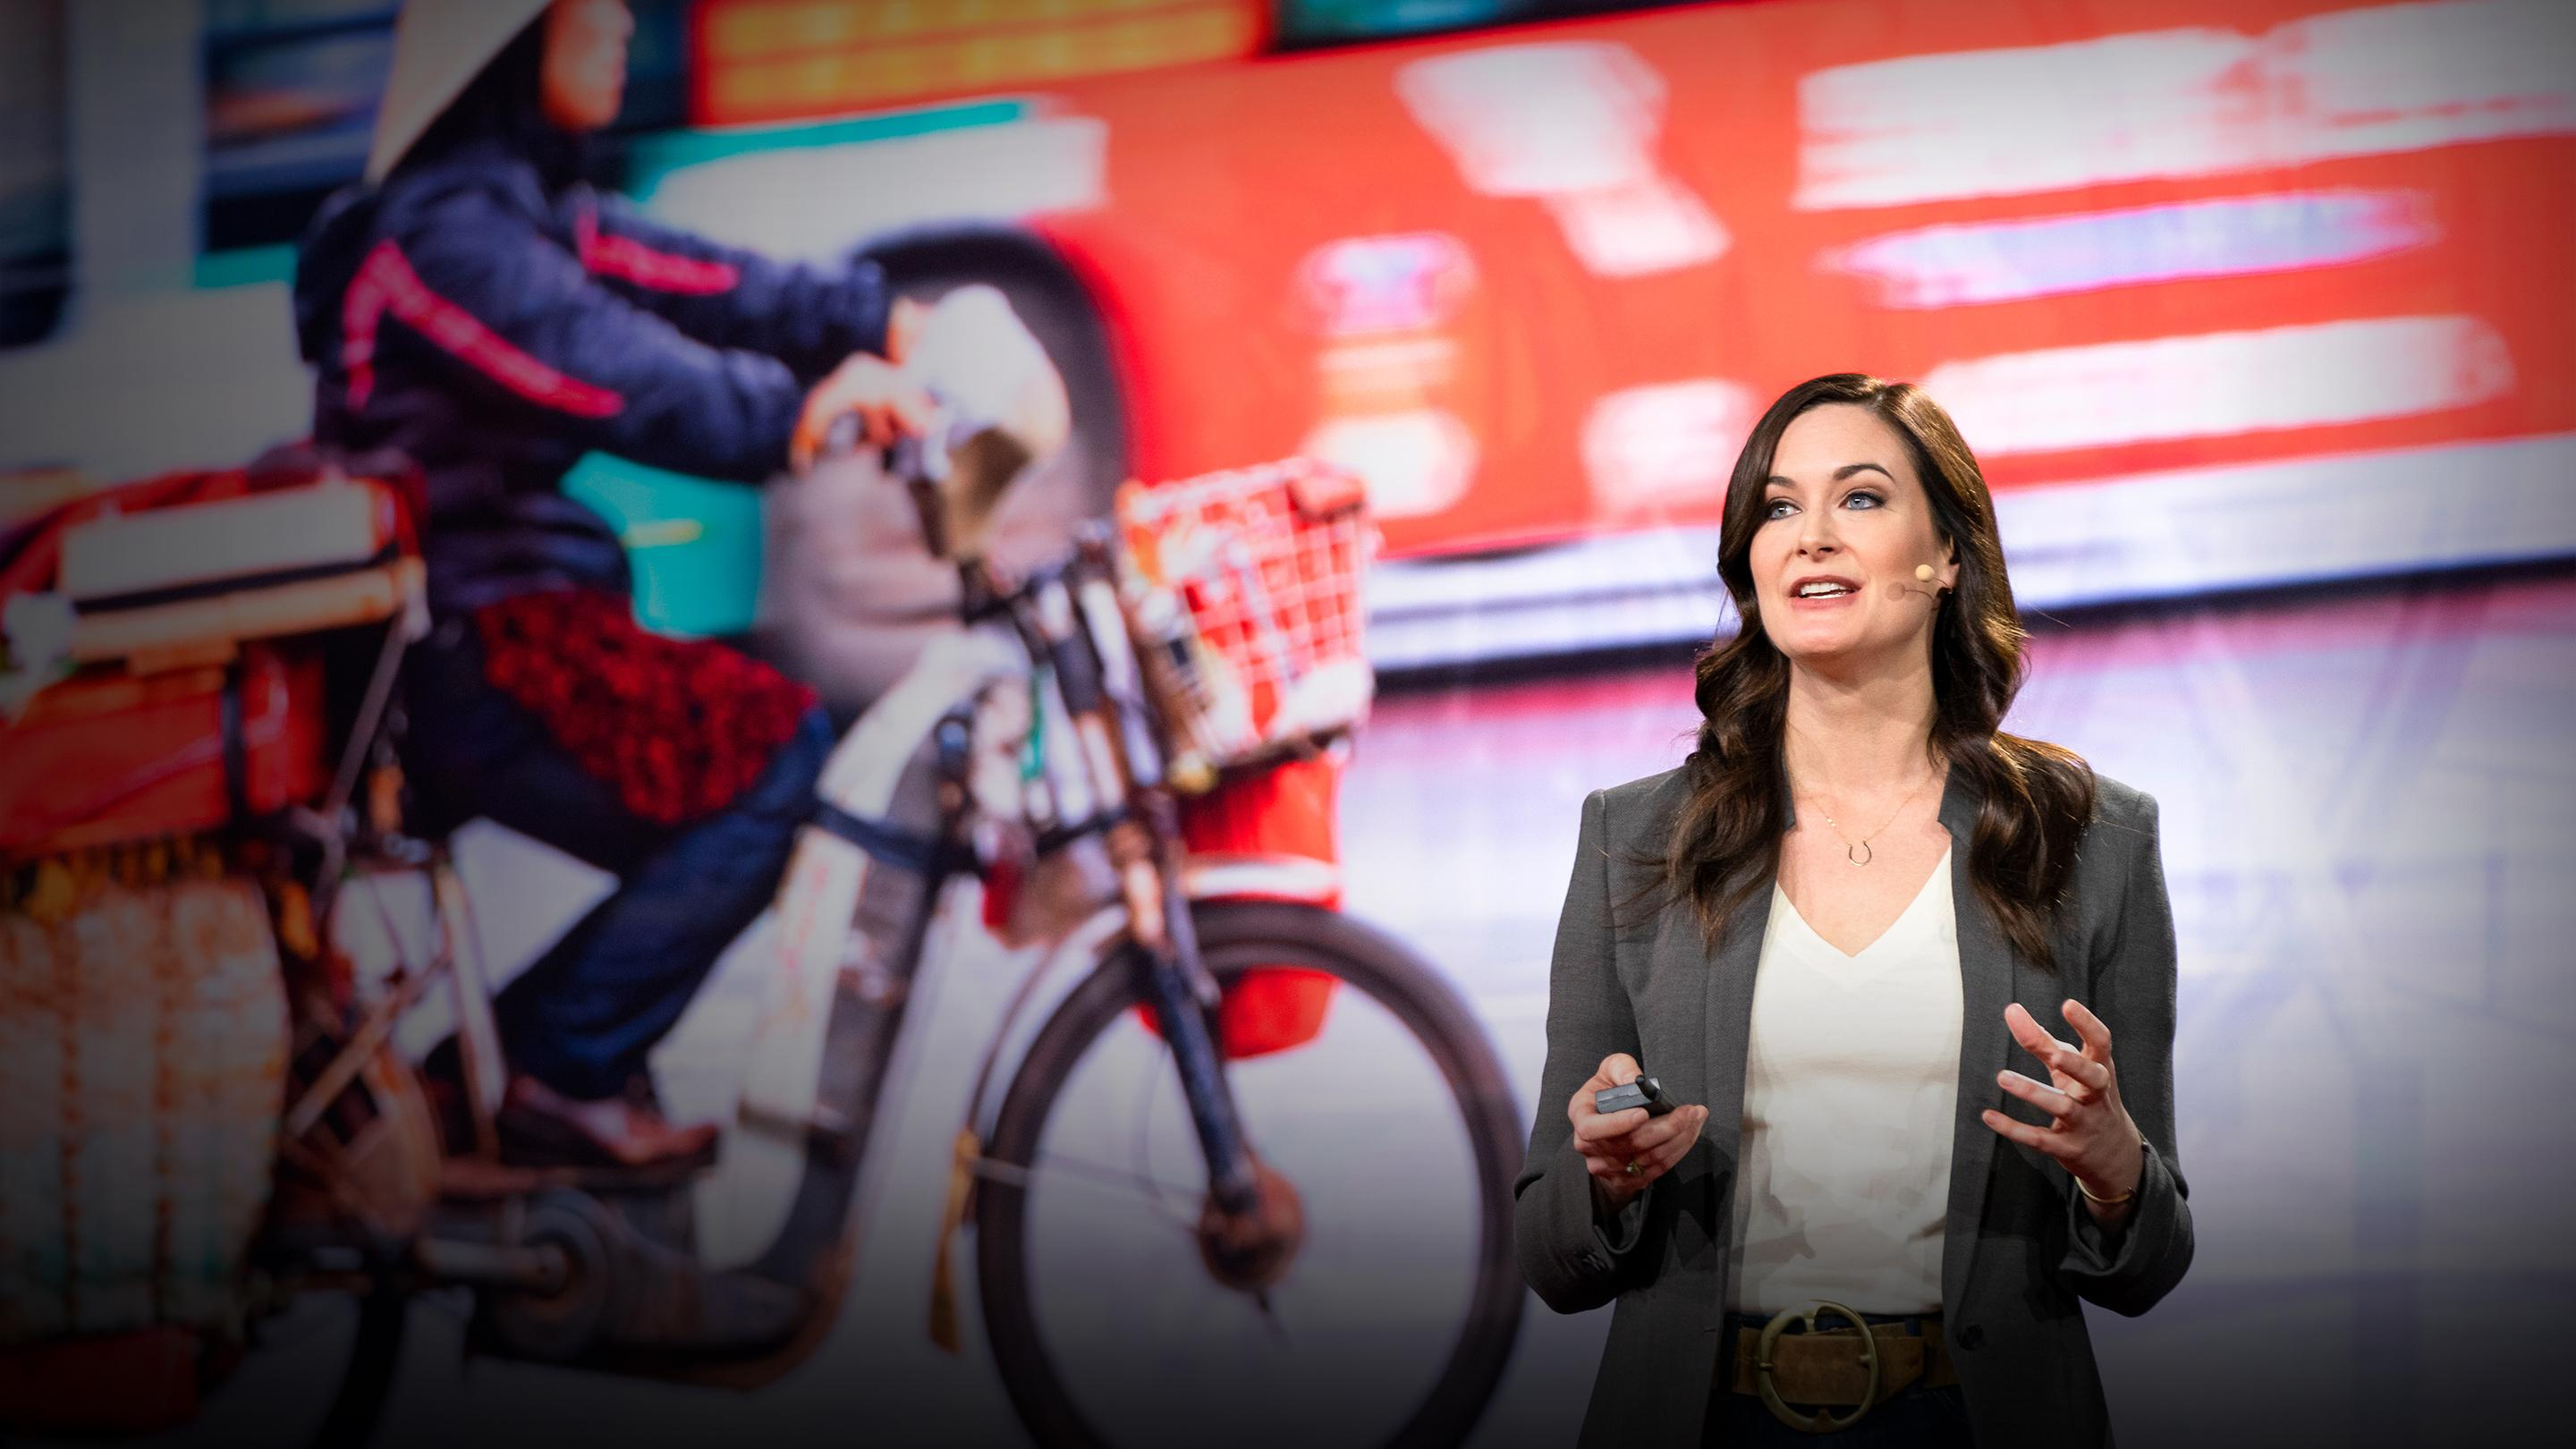 Katharine Wilkinson at TEDWomen talking about gender equity and climate change